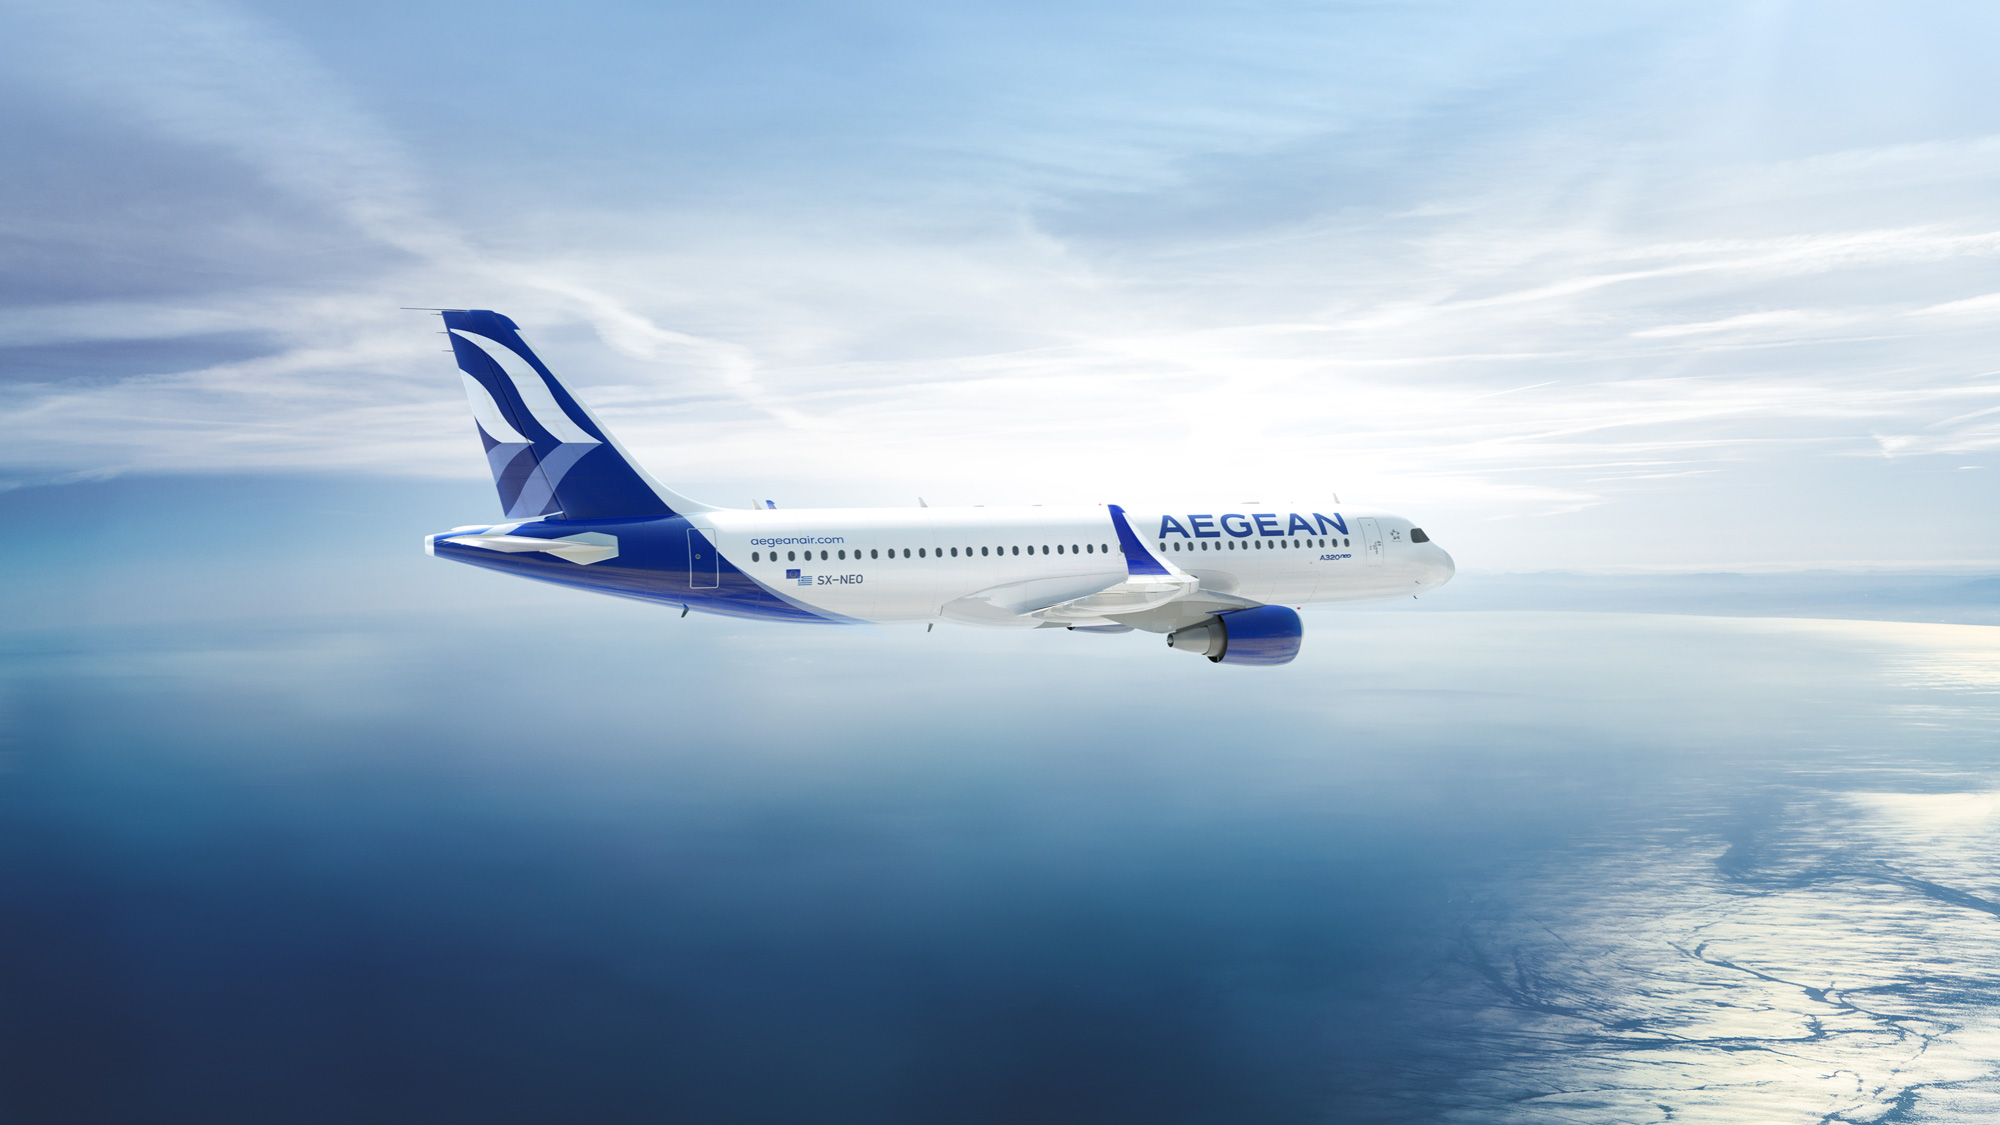 New Logo, Identity, and Livery for Aegean by PriestmanGoode